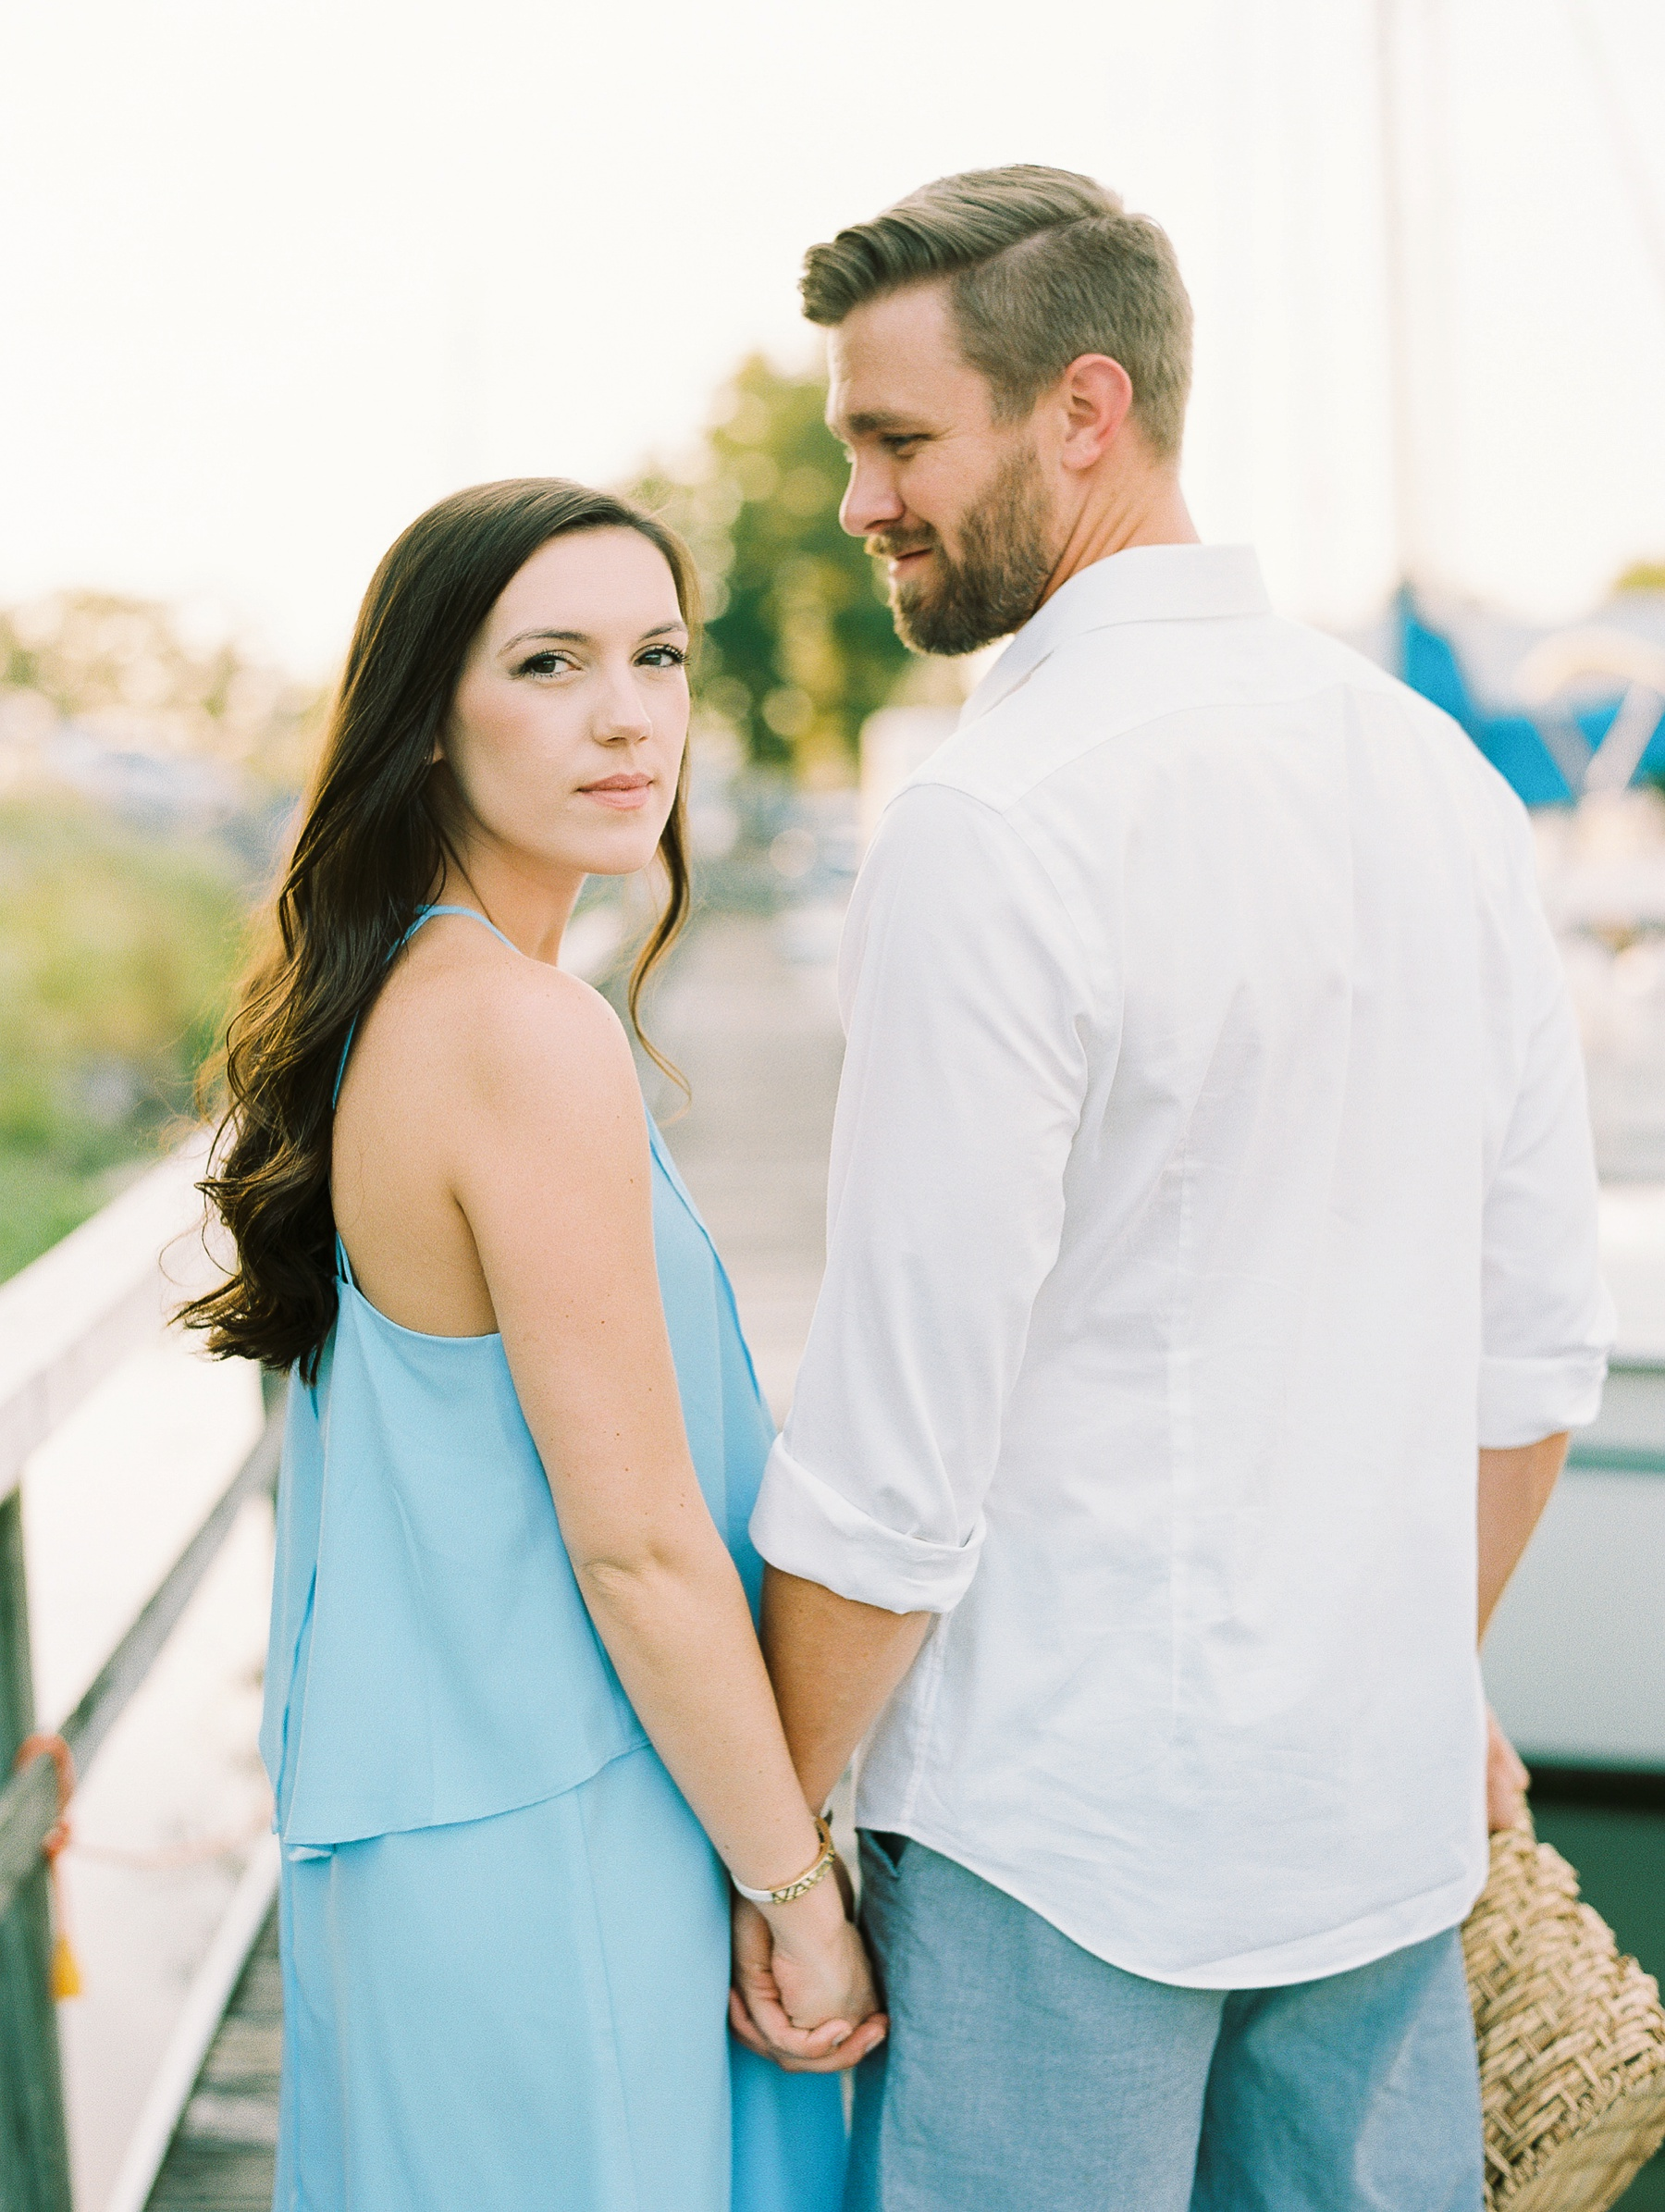 Nautical Boat Engagement Session Film Photographer_0574.jpg